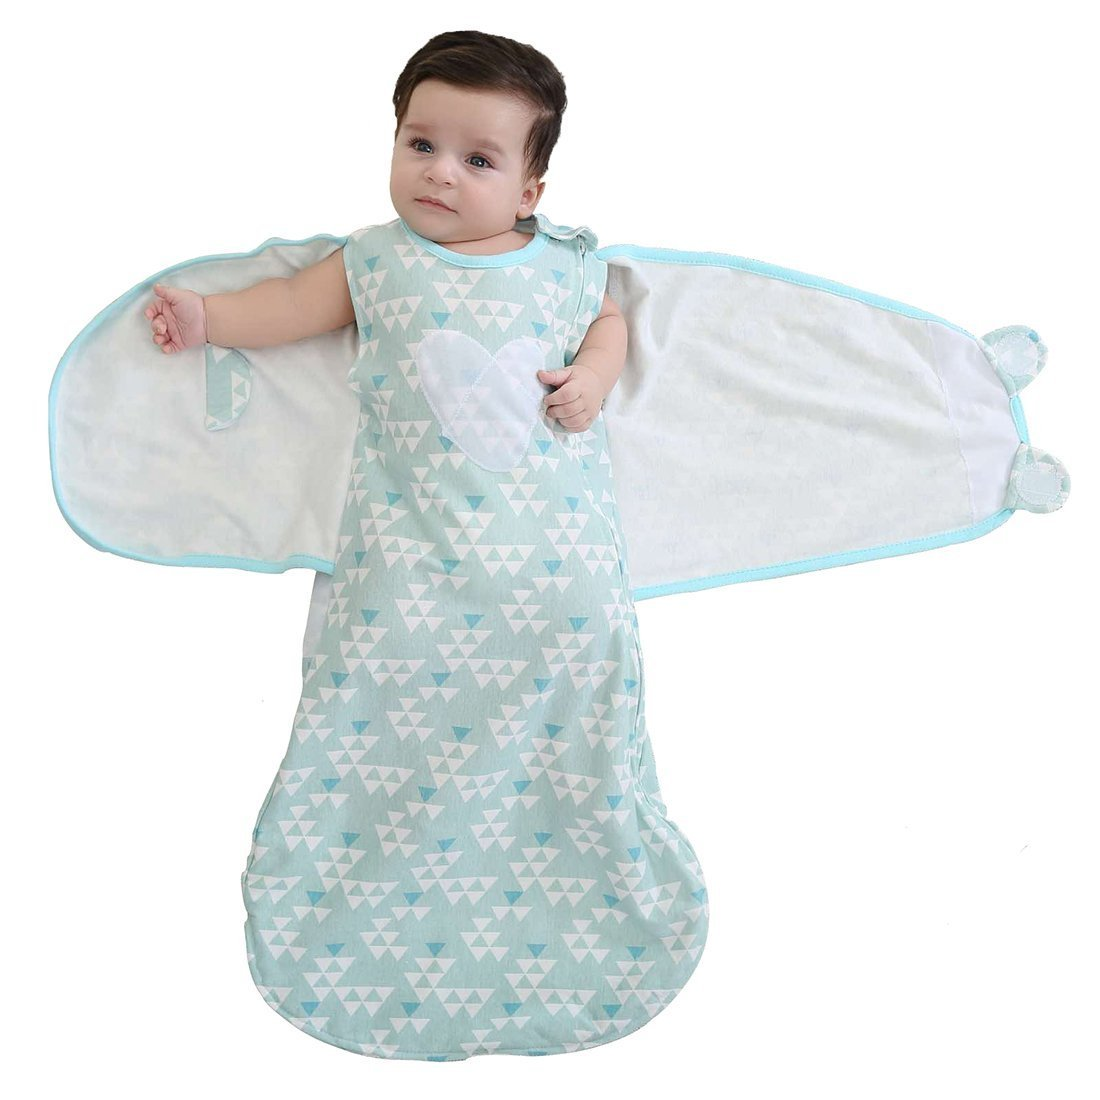 Clothing, Shoes & Accessories Baby Swaddle Wrap Up Blanket Sleeping Bag Cotton Bedding Sleepsack Care & Love